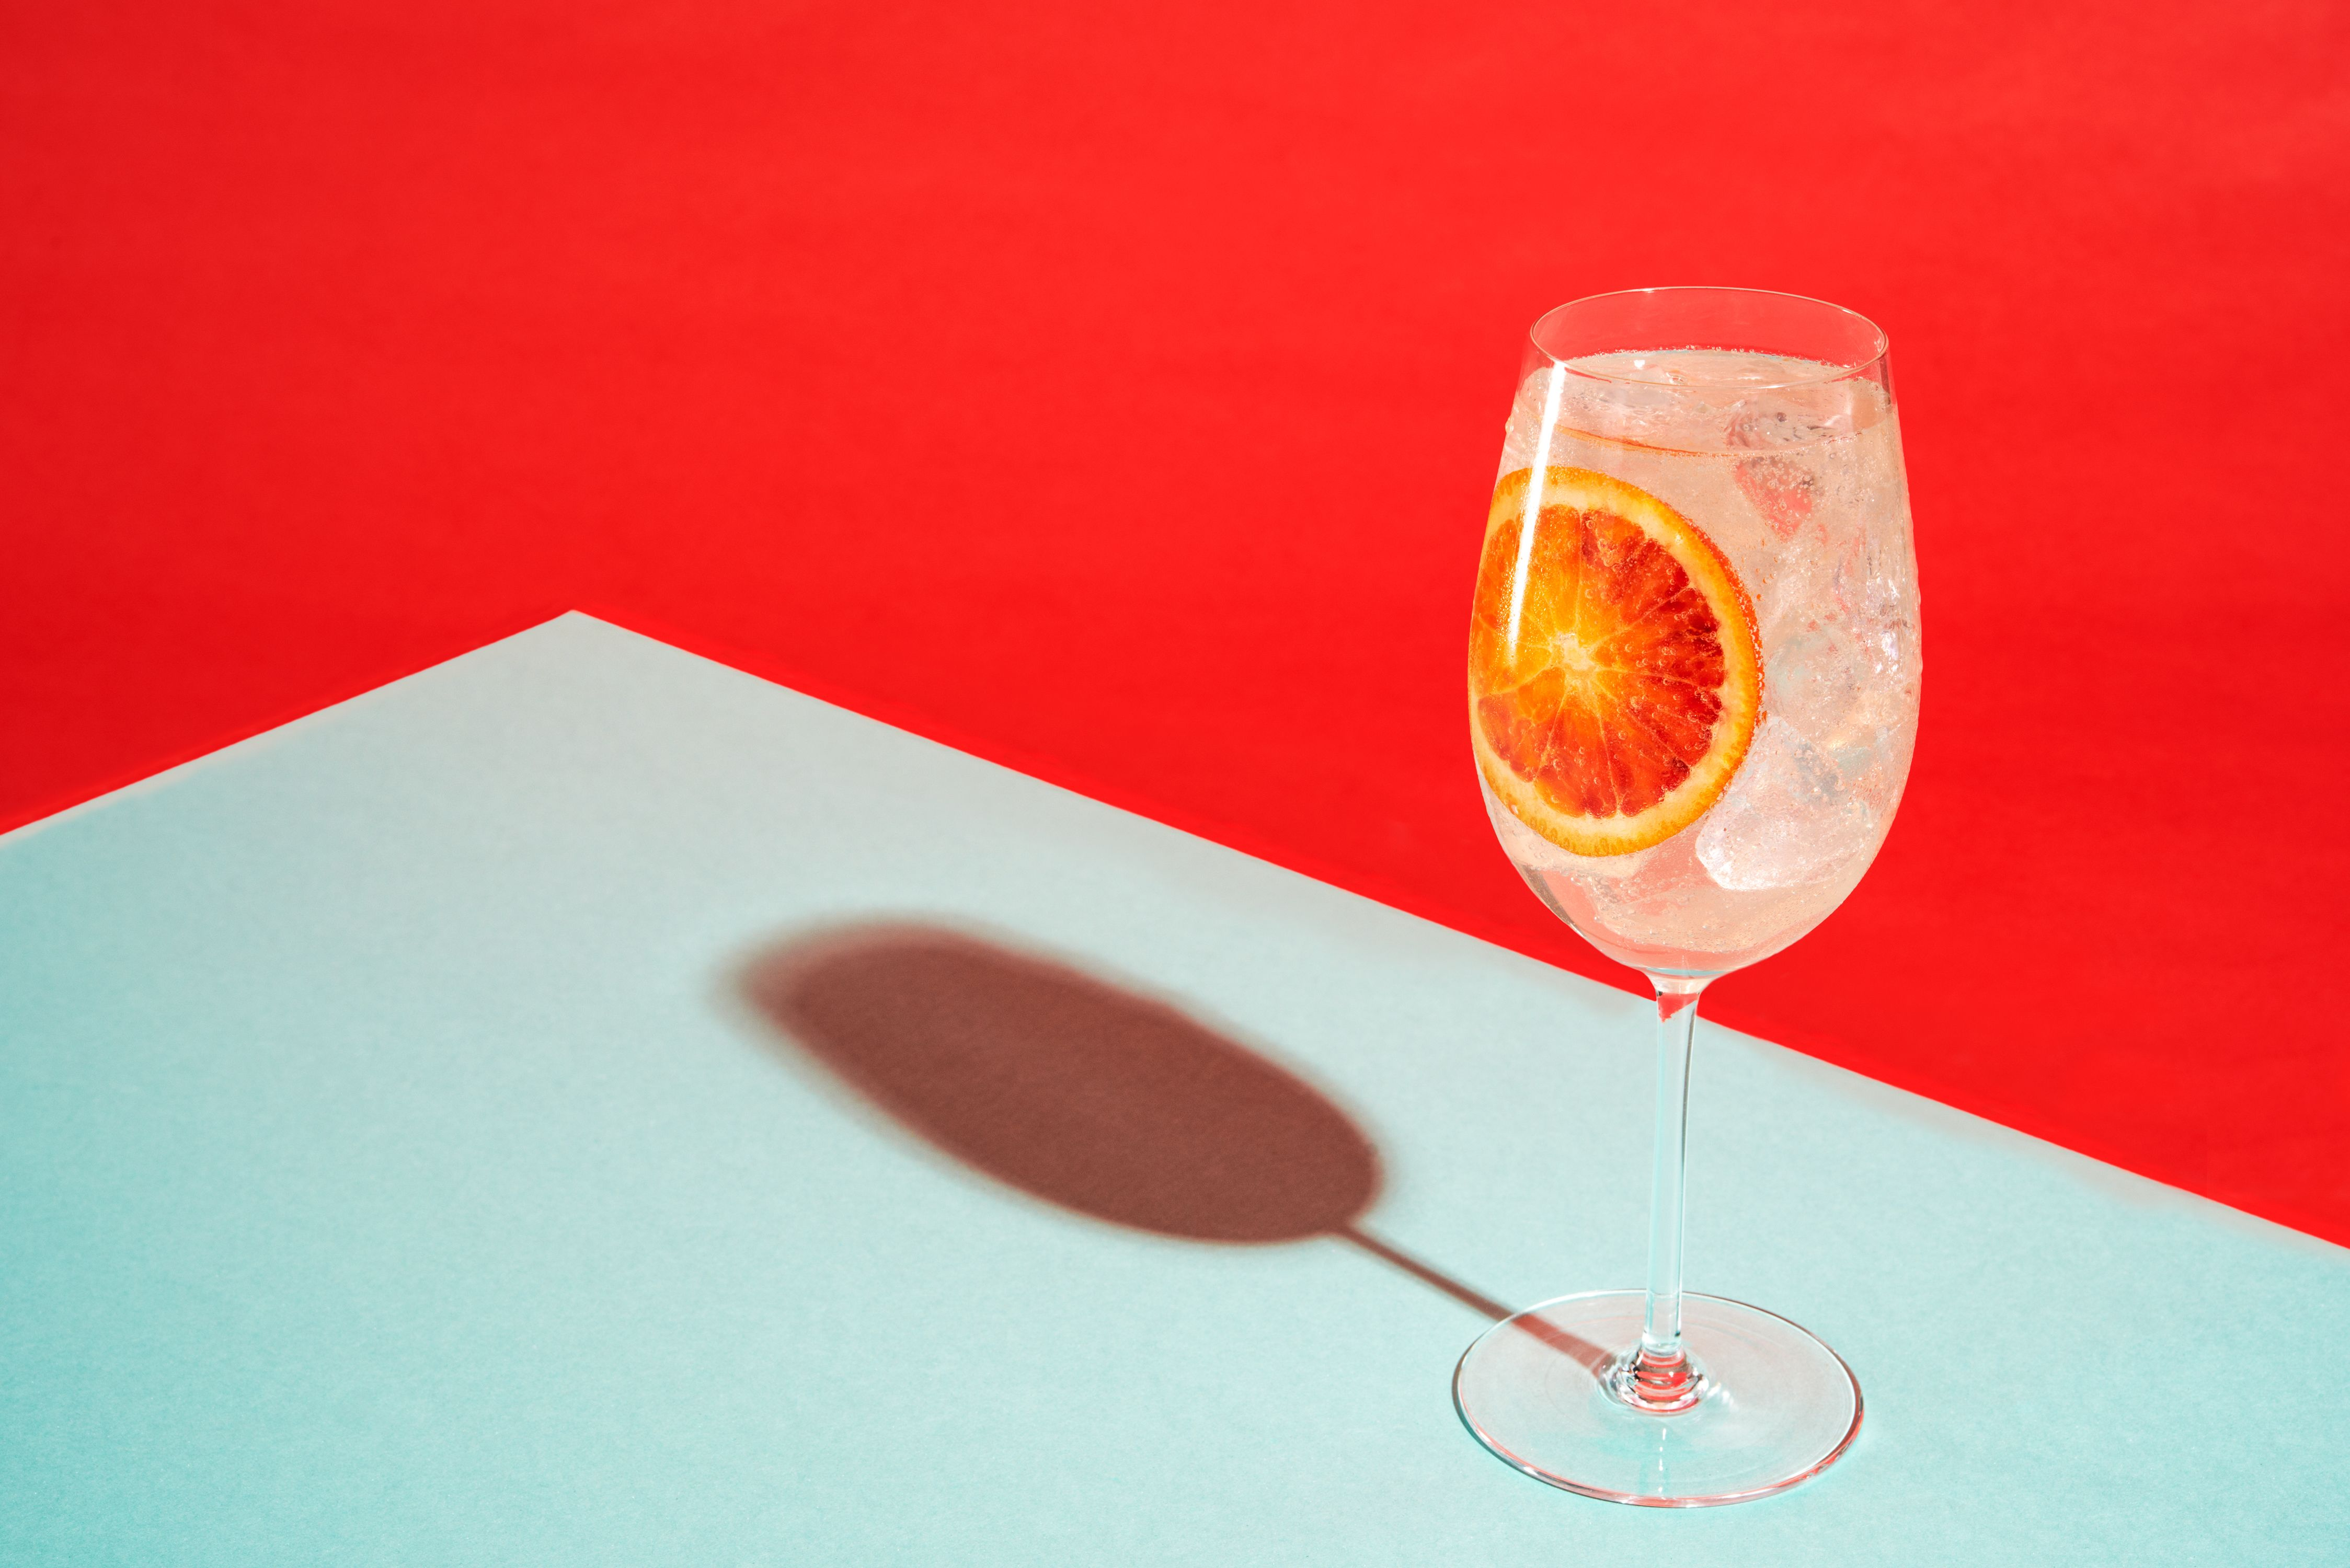 Solerno Sparkling 1 Pt Solerno 5 Pts Sparkling Wine Pour Over Ice In A Wine Glass And Garni Bartenders Photography Photographing Food Cocktail Photography